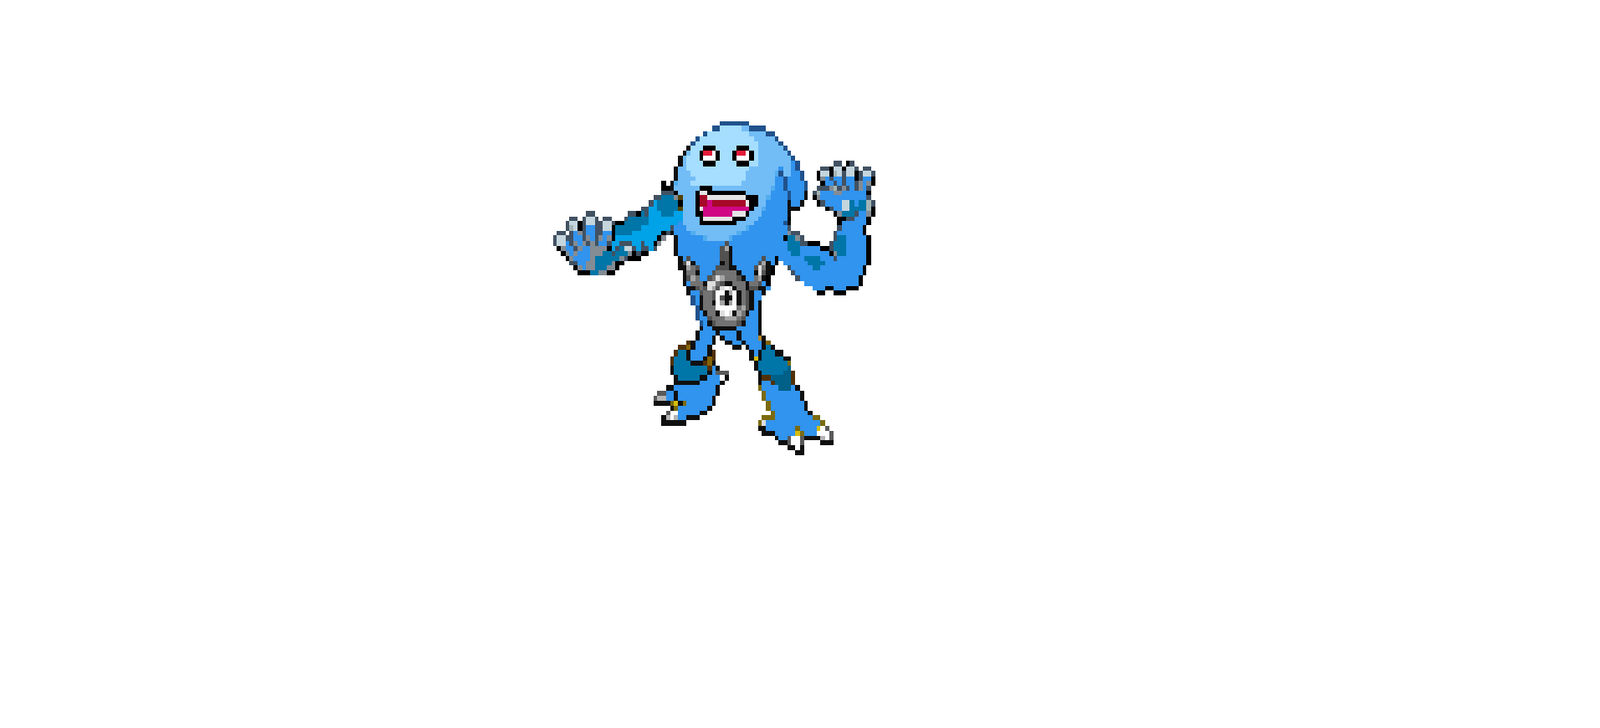 Pixel Pokemon Sprite Idea 2 By Maxthecoolguy On Deviantart